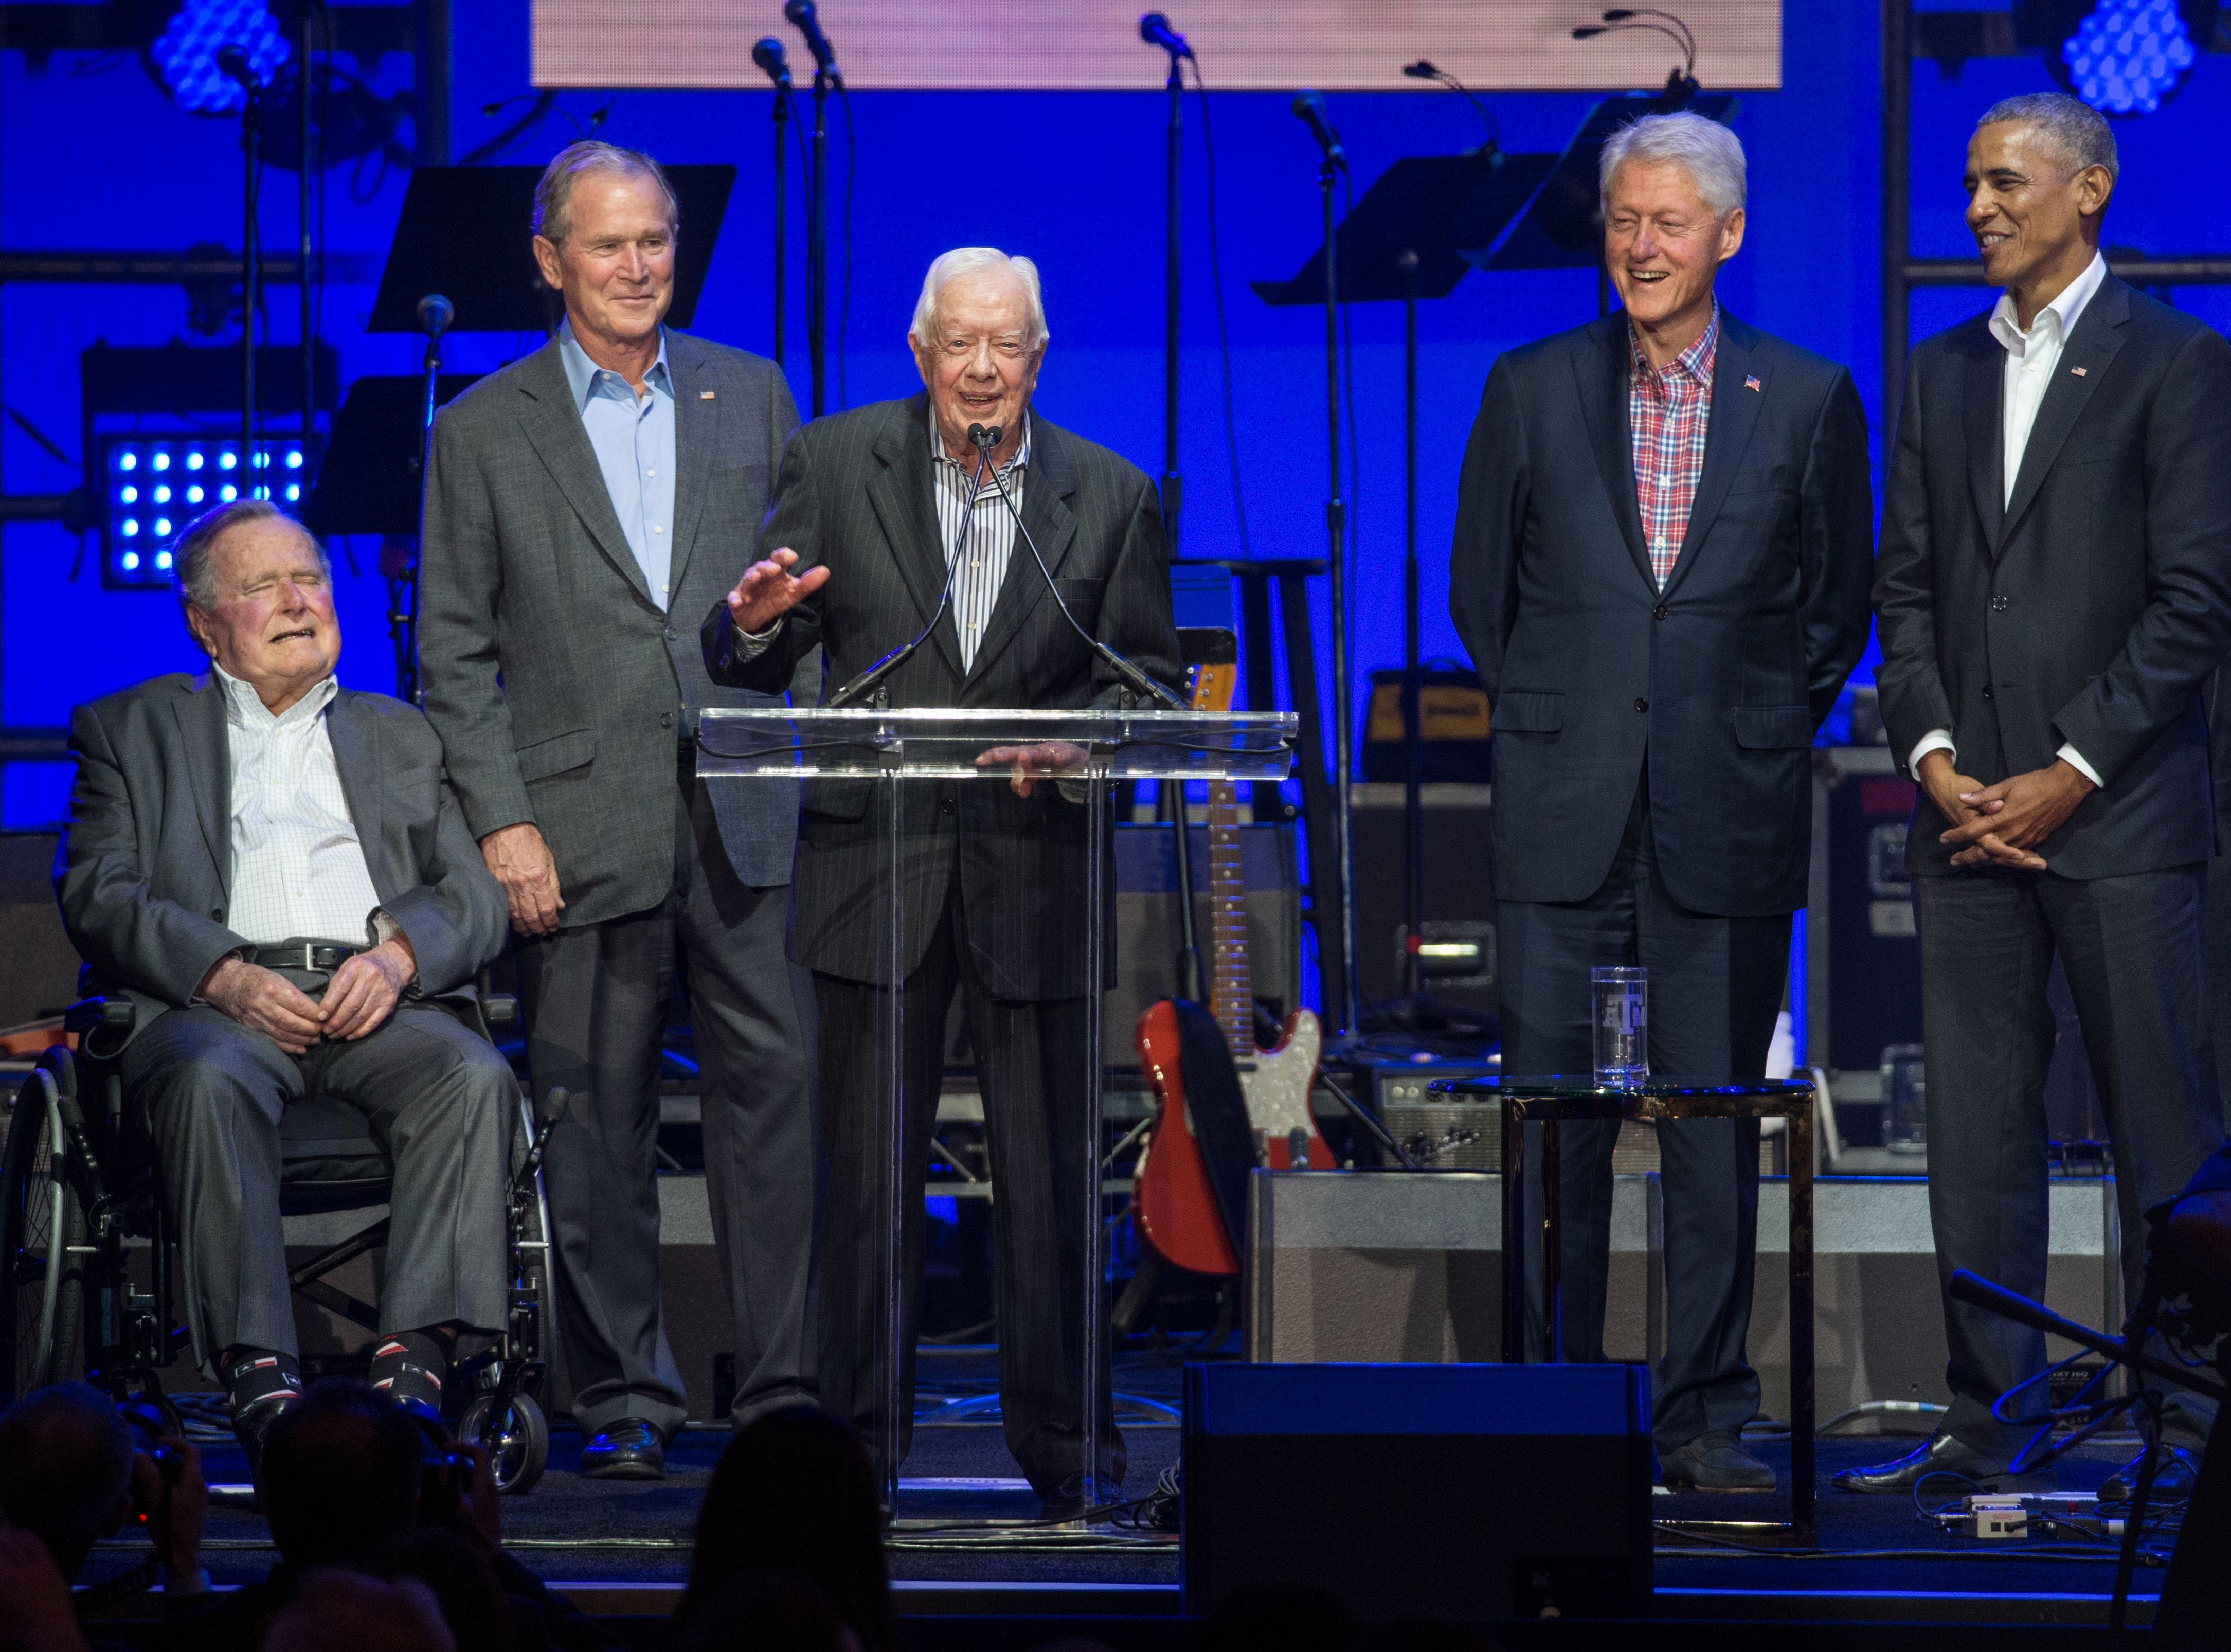 Jimmy Carter speaks along side other former presidents' George H. W. Bush, George W. Bush, Bill Clinton and Barack Obama as they attend the Hurricane Relief Concert in College Station, Texas, on Oct. 21, 2017.